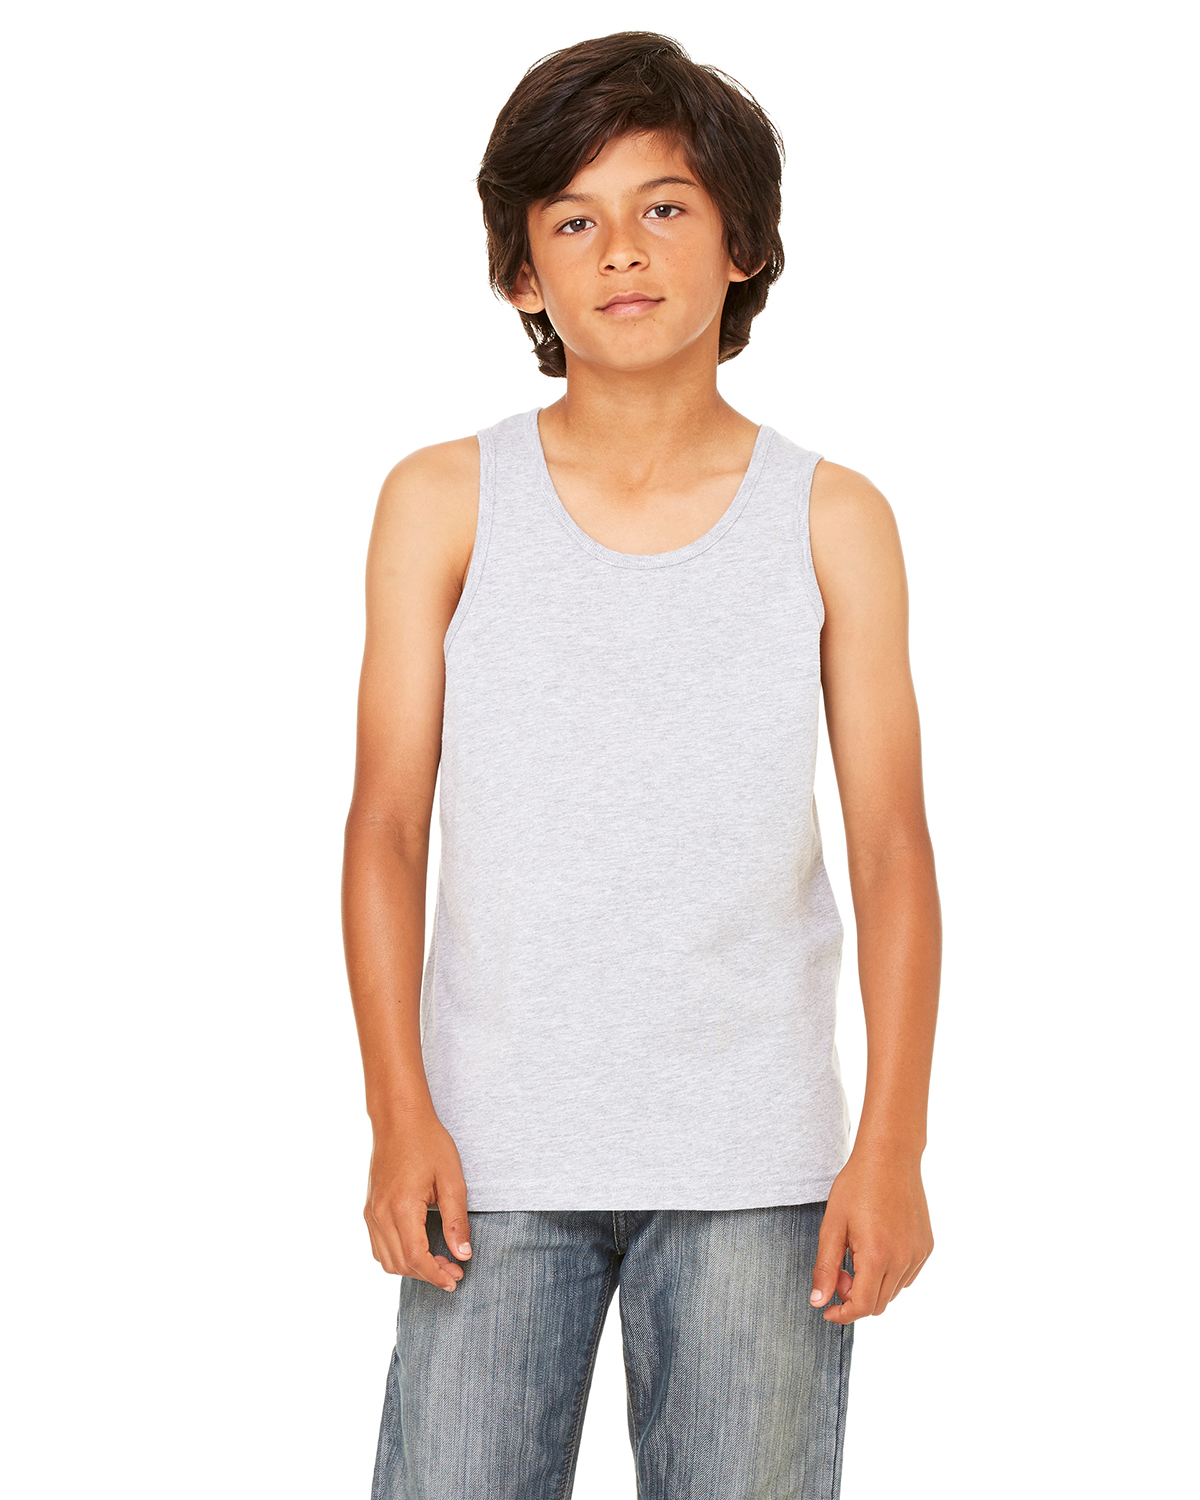 Canvas Youth Jersey Unisex Tank Top Boys Girls Sleeveless Tee 3480Y SALE Bella